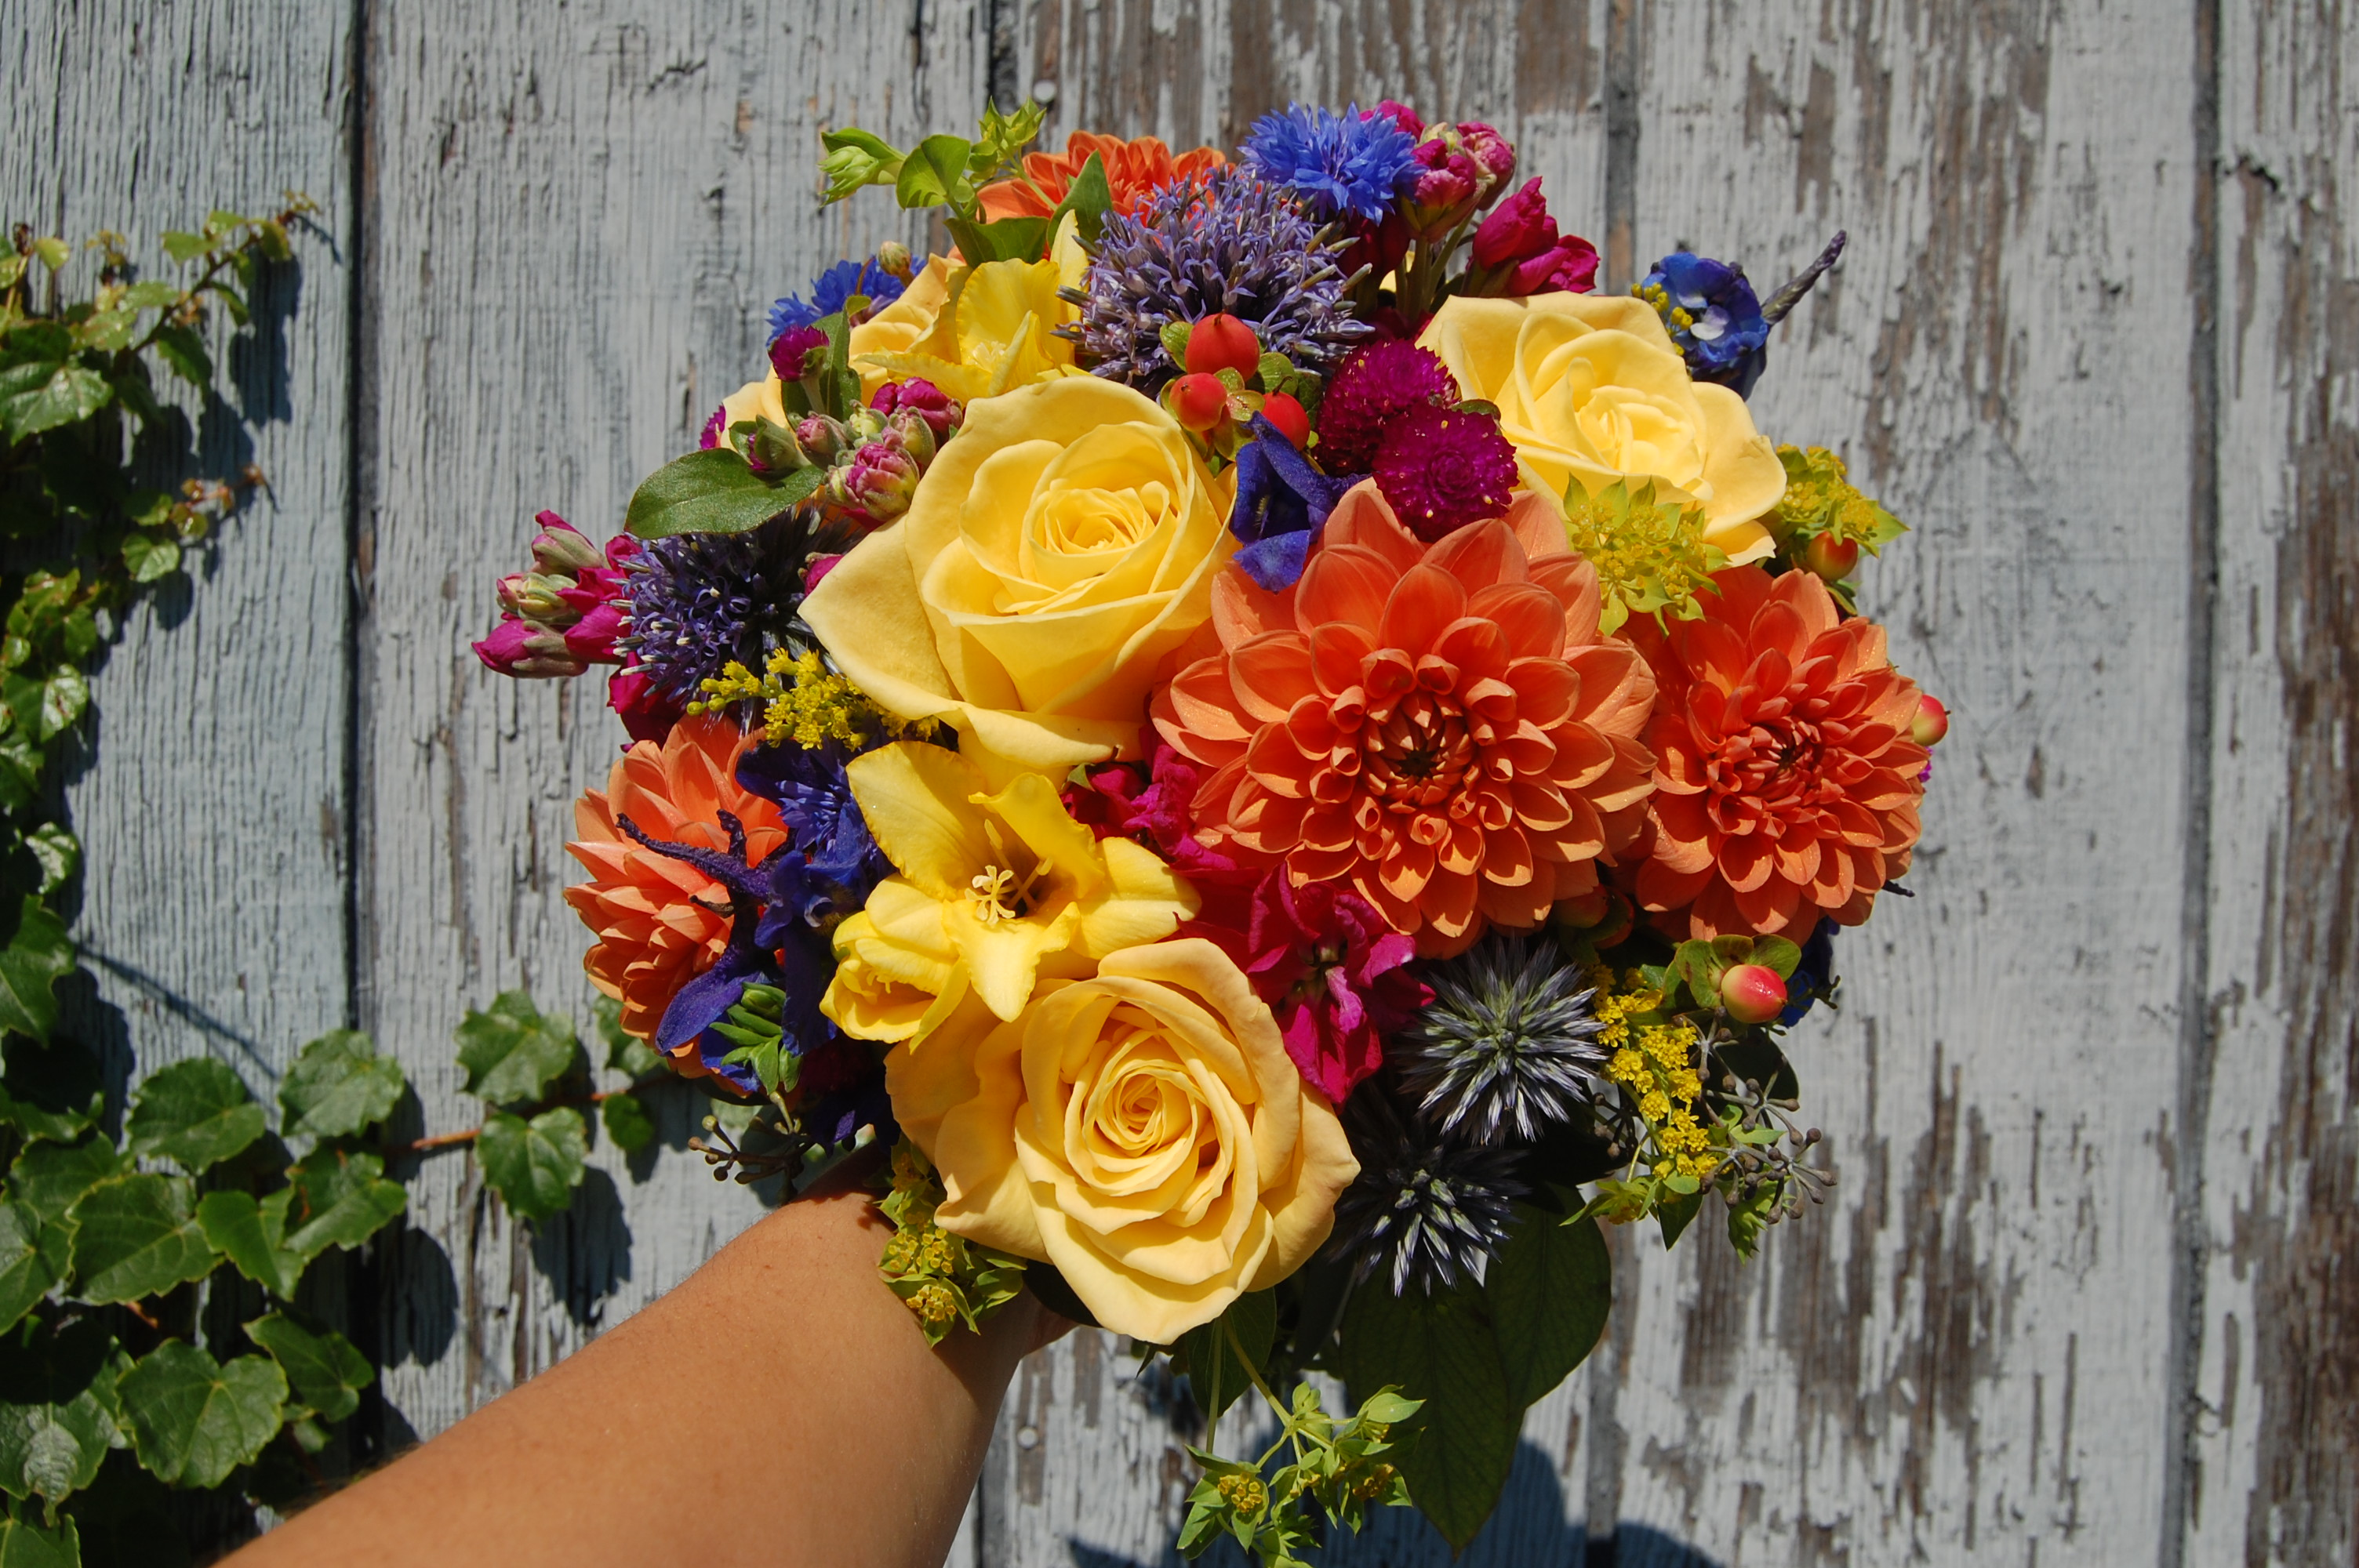 roses, dahlias, thistle, freesia